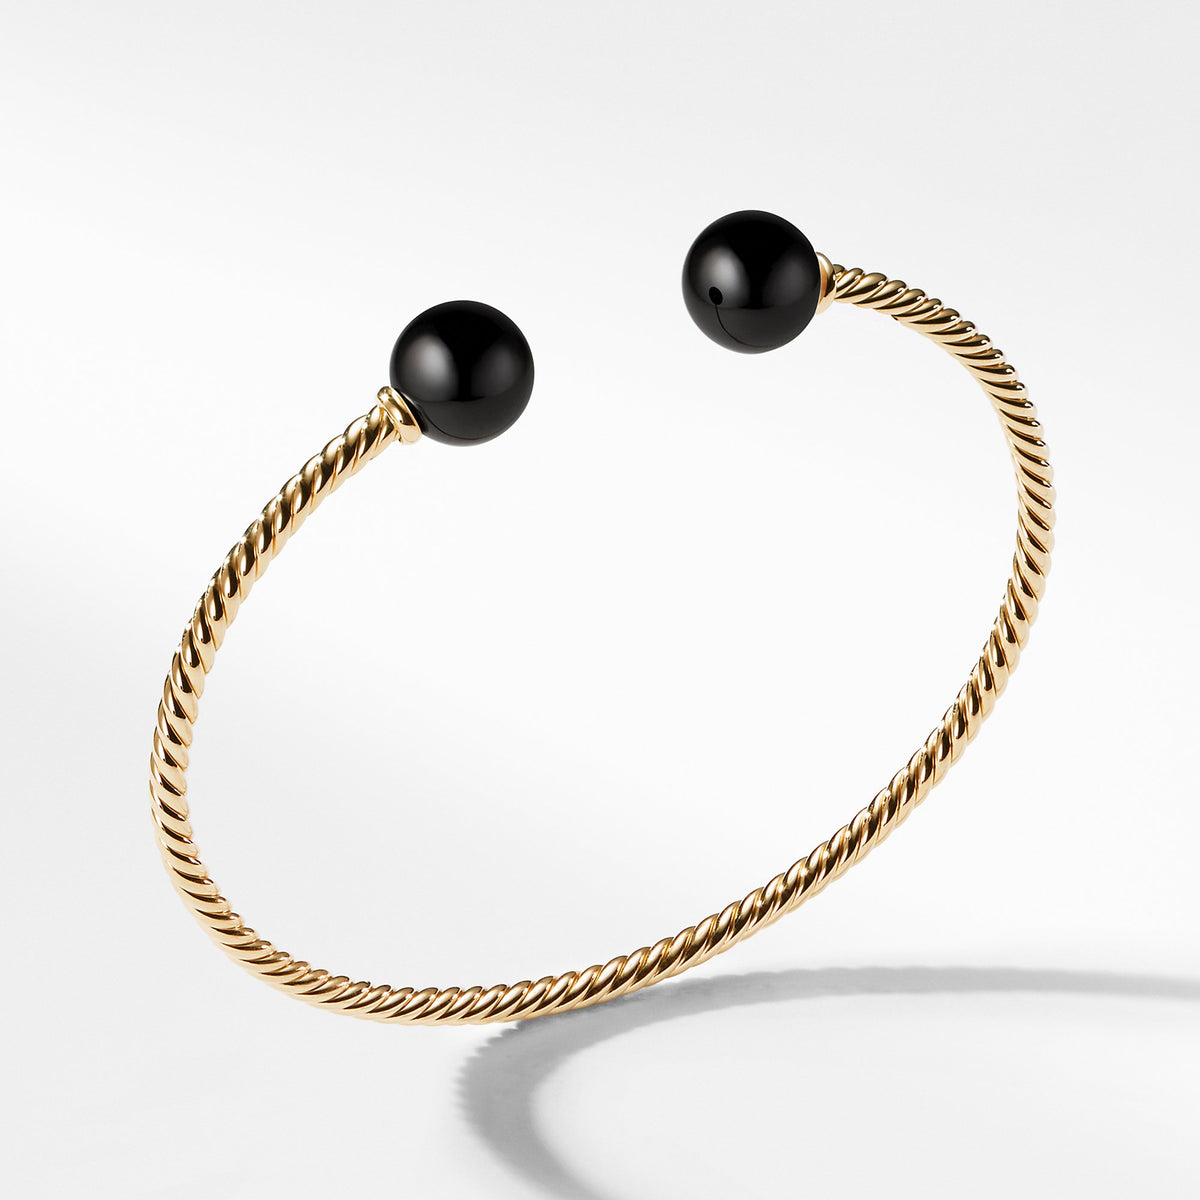 Bead Bracelet with Black Onyx in 18K Gold